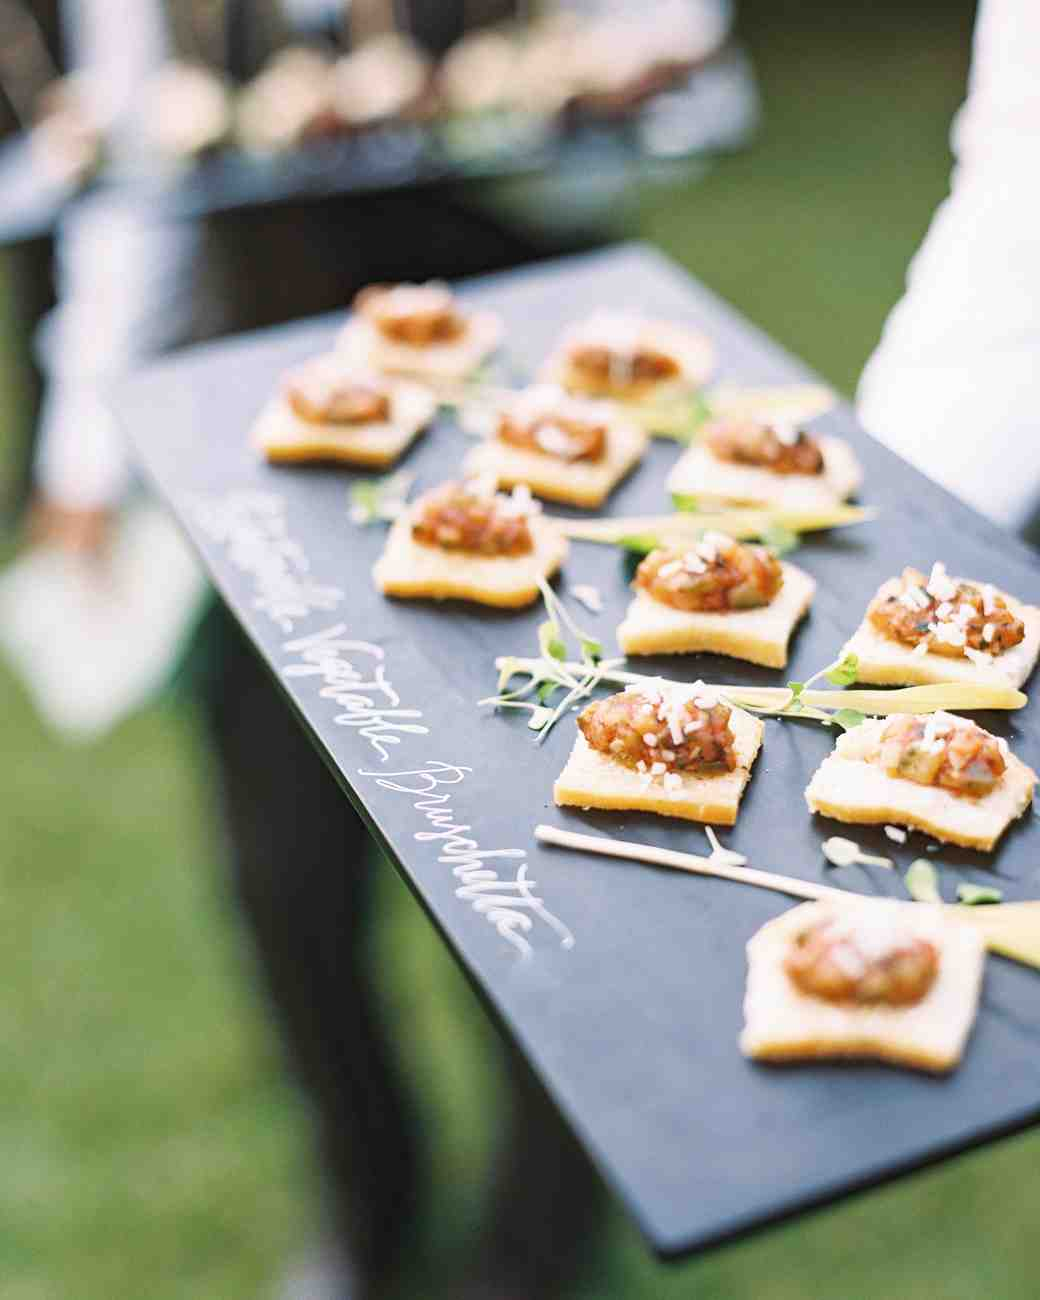 taylor-john-wedding-appetizers-d11-s113035-0616.jpg